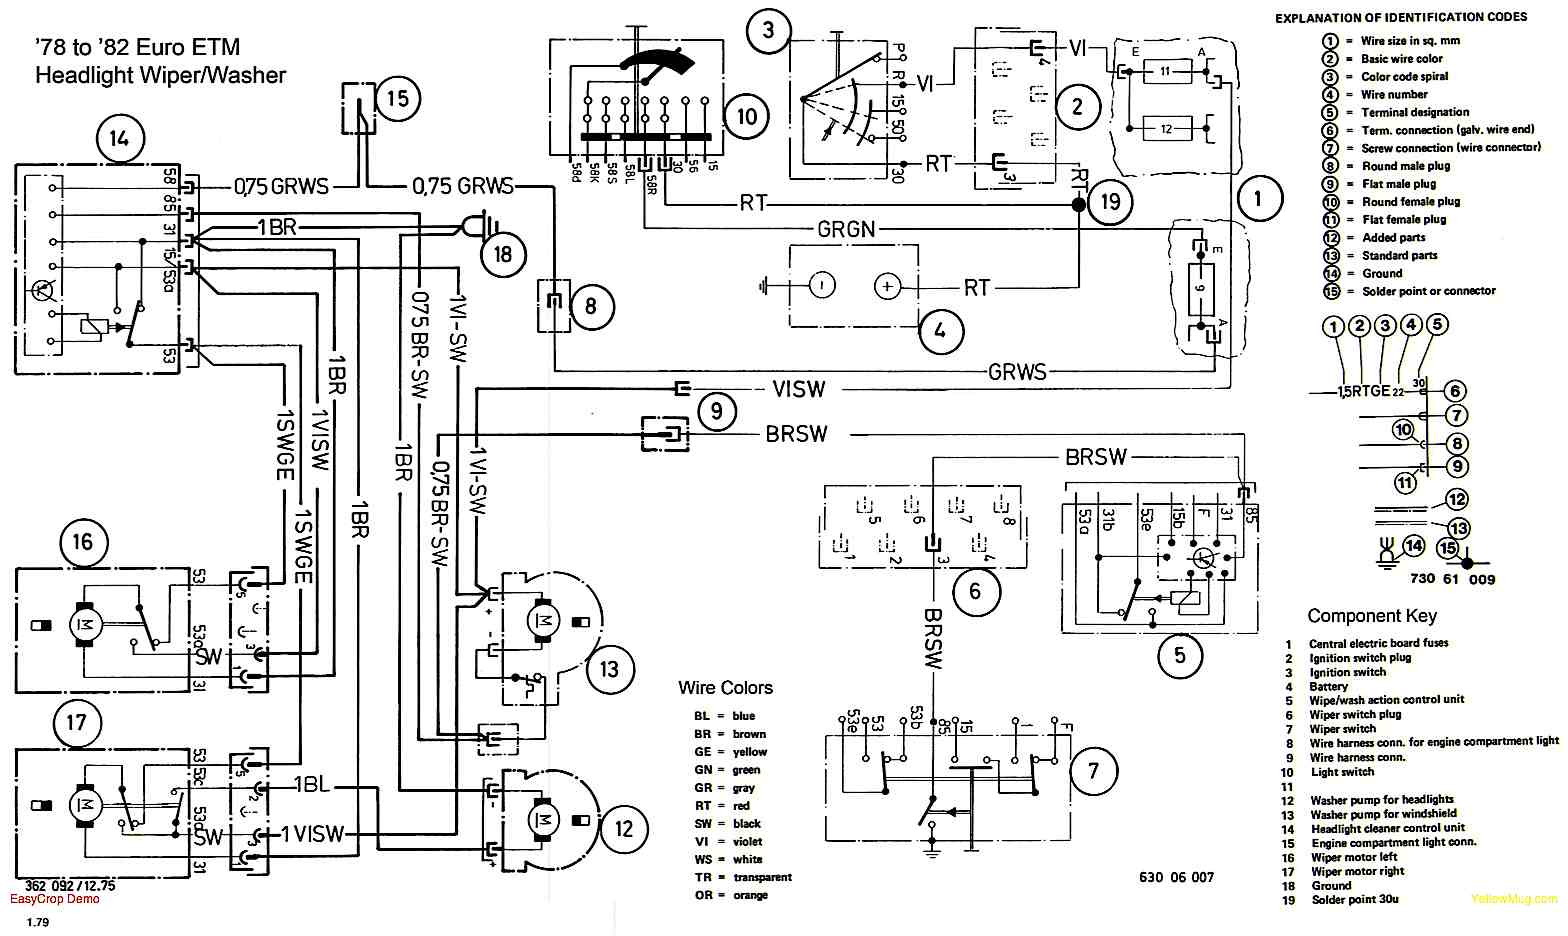 634869 Quadrajet Choke Wire further RepairGuideContent further 95 Buick Century Wiring Diagram as well 2005 Honda Civic Engine Diagram moreover Ford Mustang Wiring Diagram. on 1995 buick lesabre engine wiring diagrams